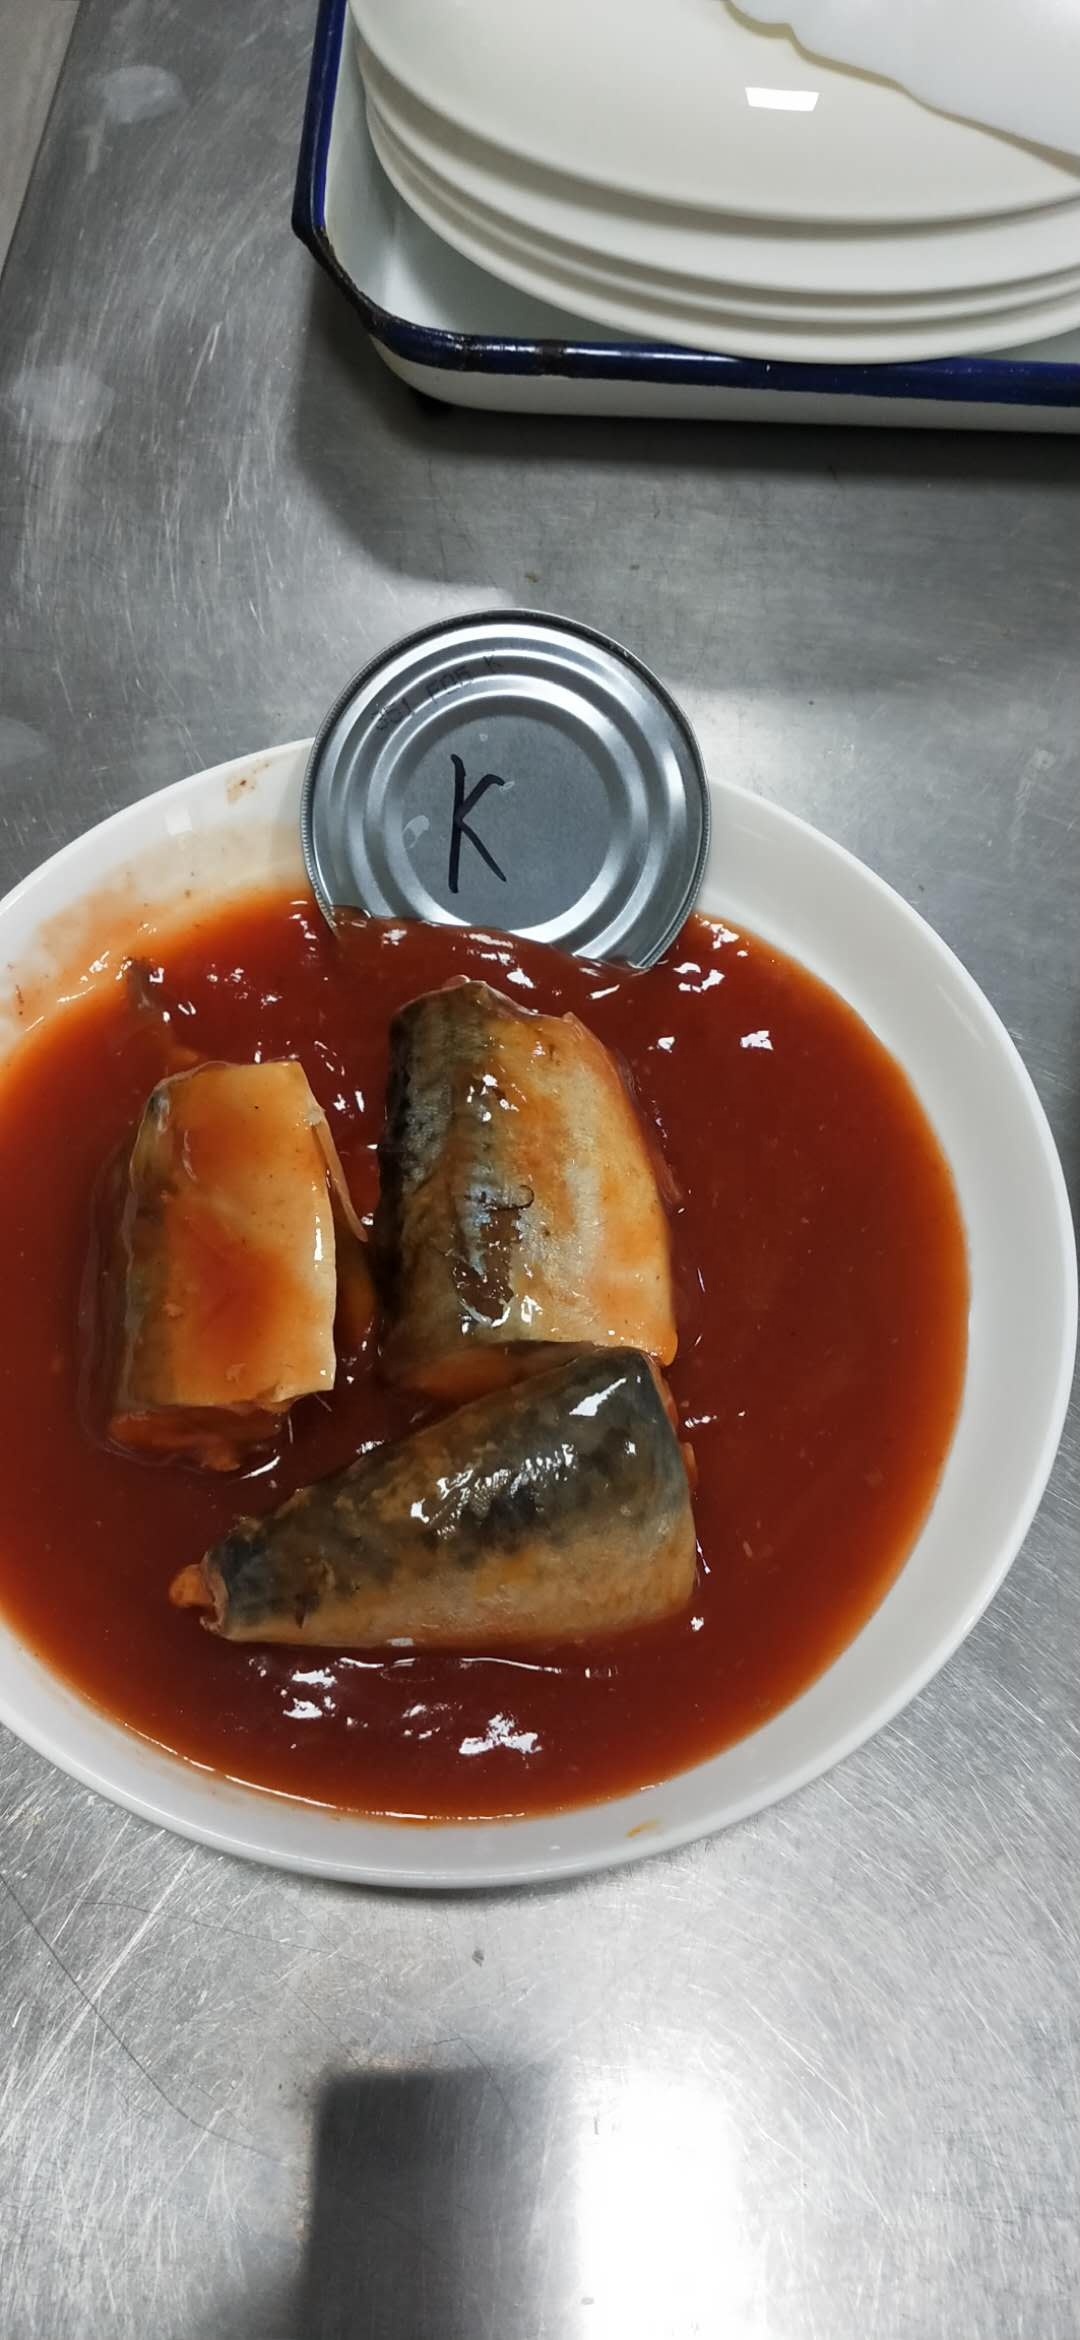 China export high quality canned mackerel fish/sardine in tomato sauce/in brine